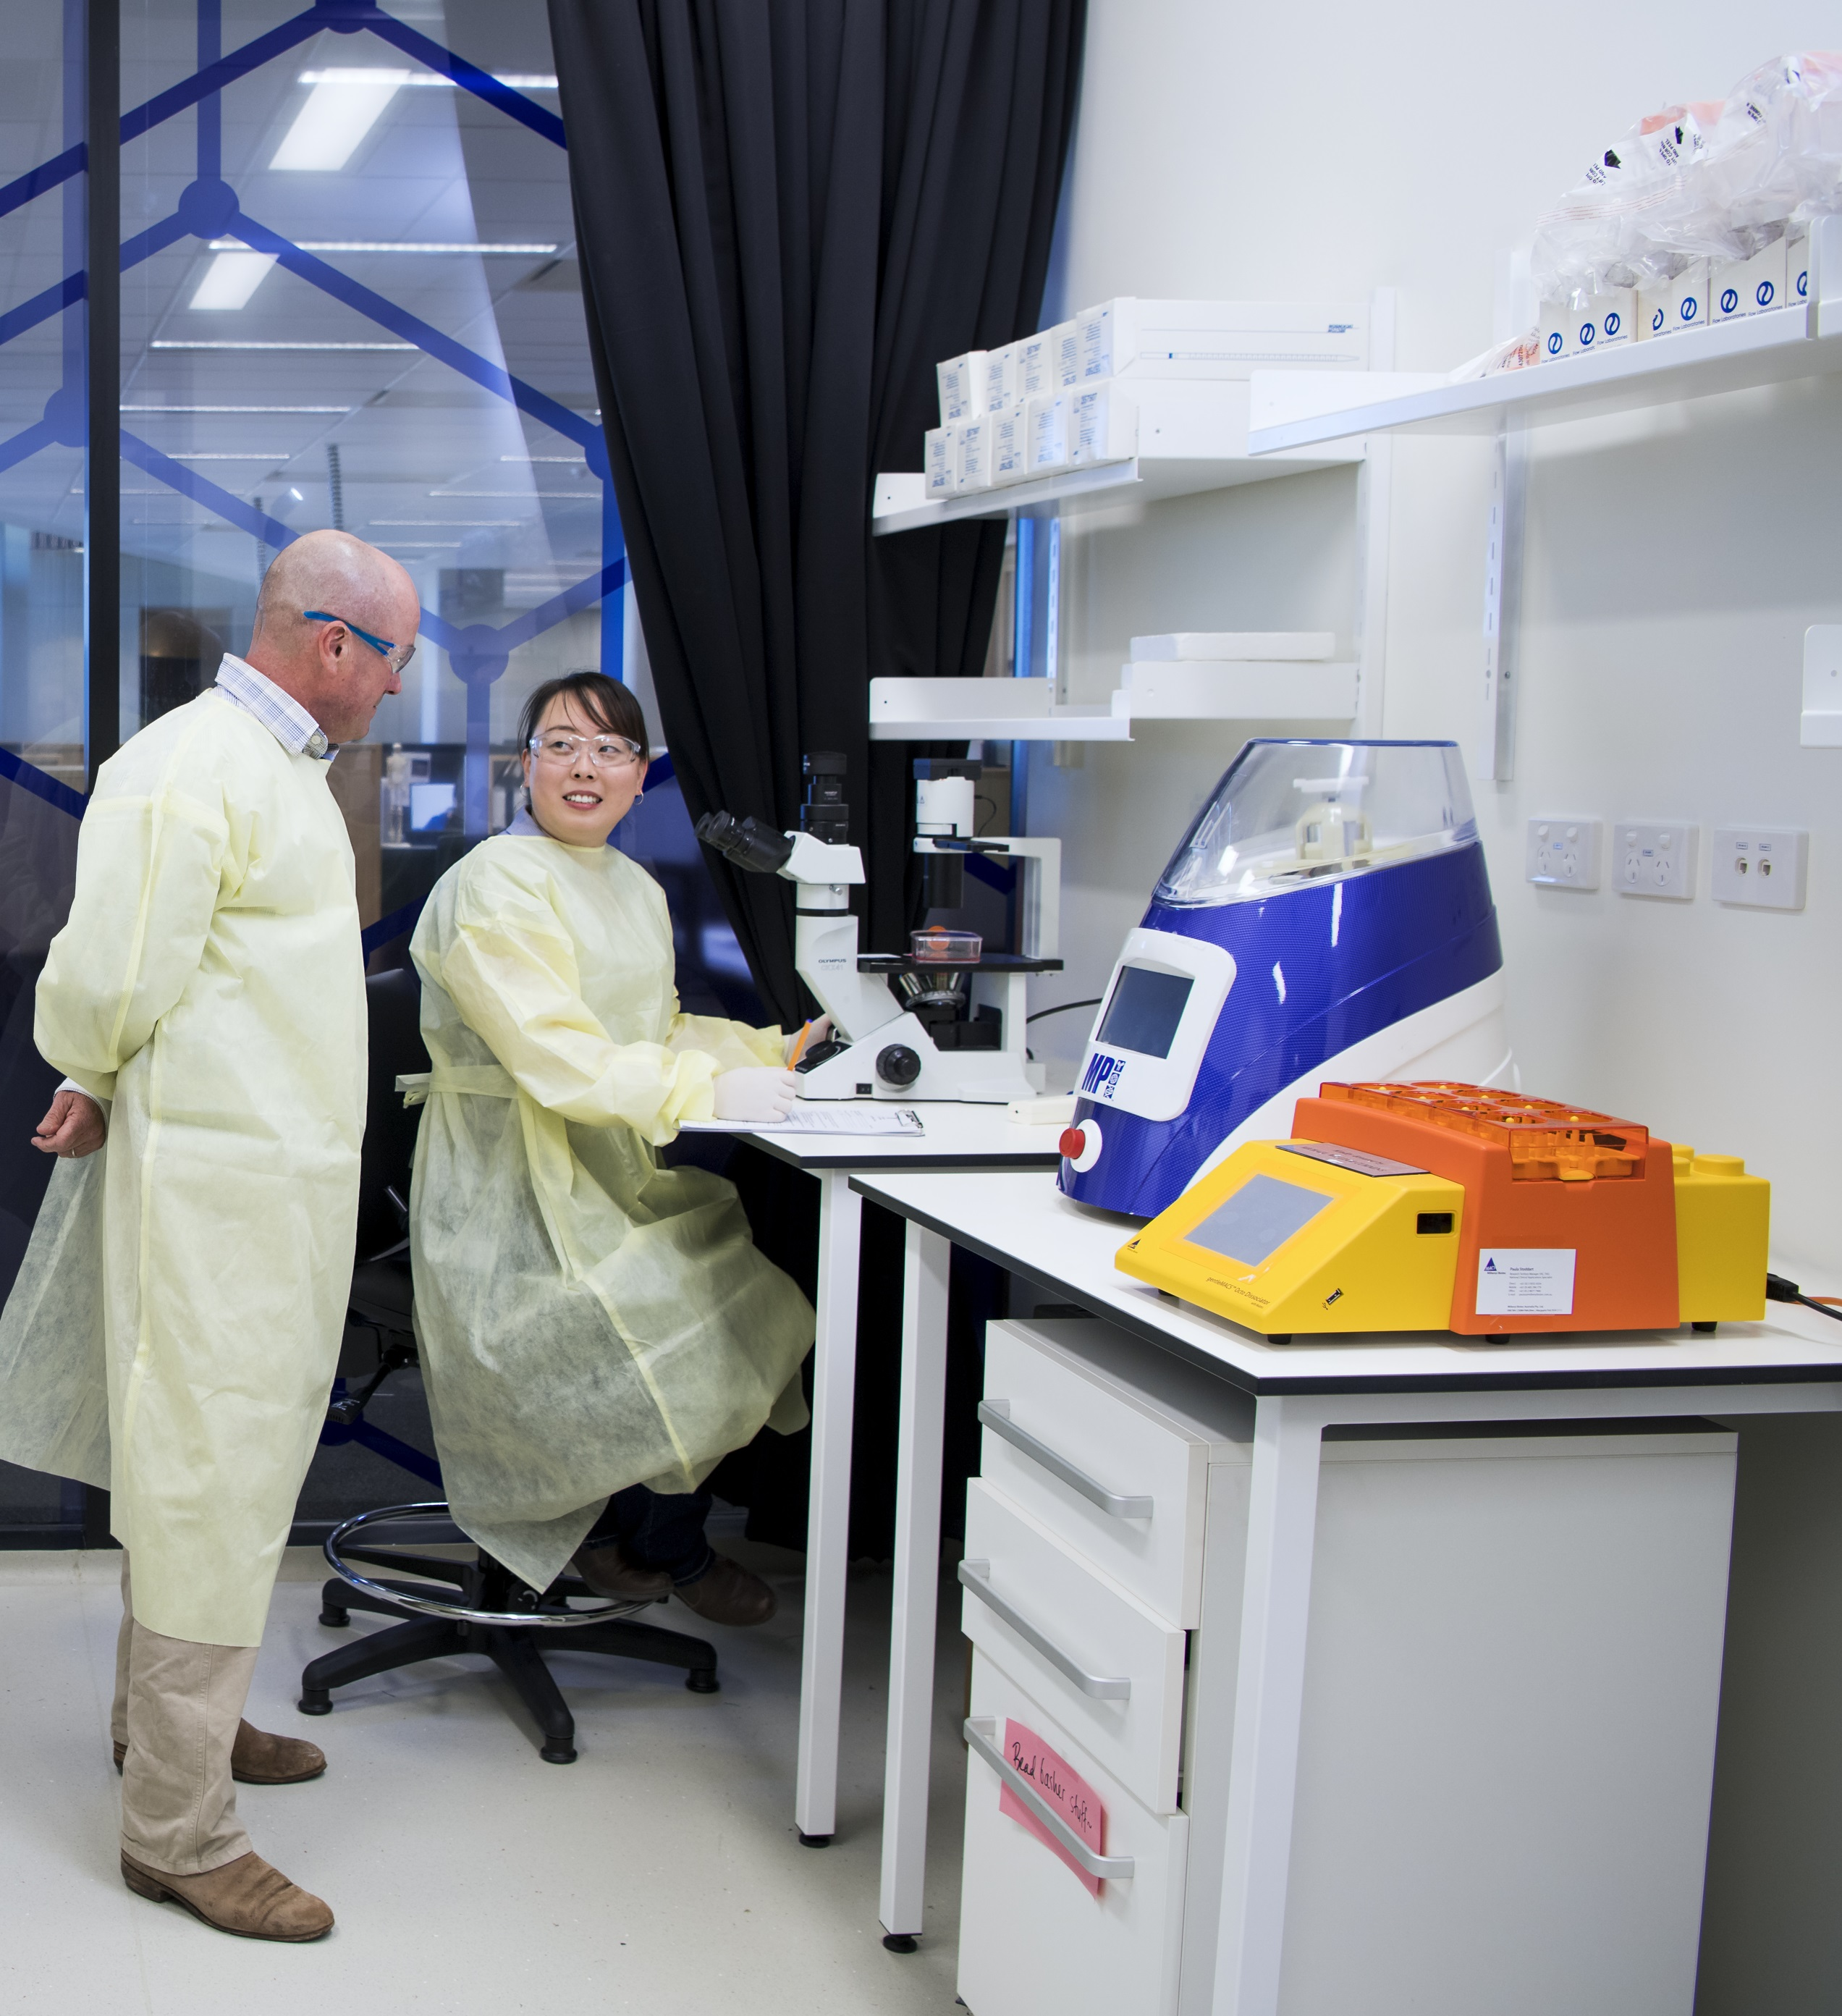 A male and female scientist wearing disposable lab coats work at a bench in a brightly lit lab with brightly coloured equipment around them.